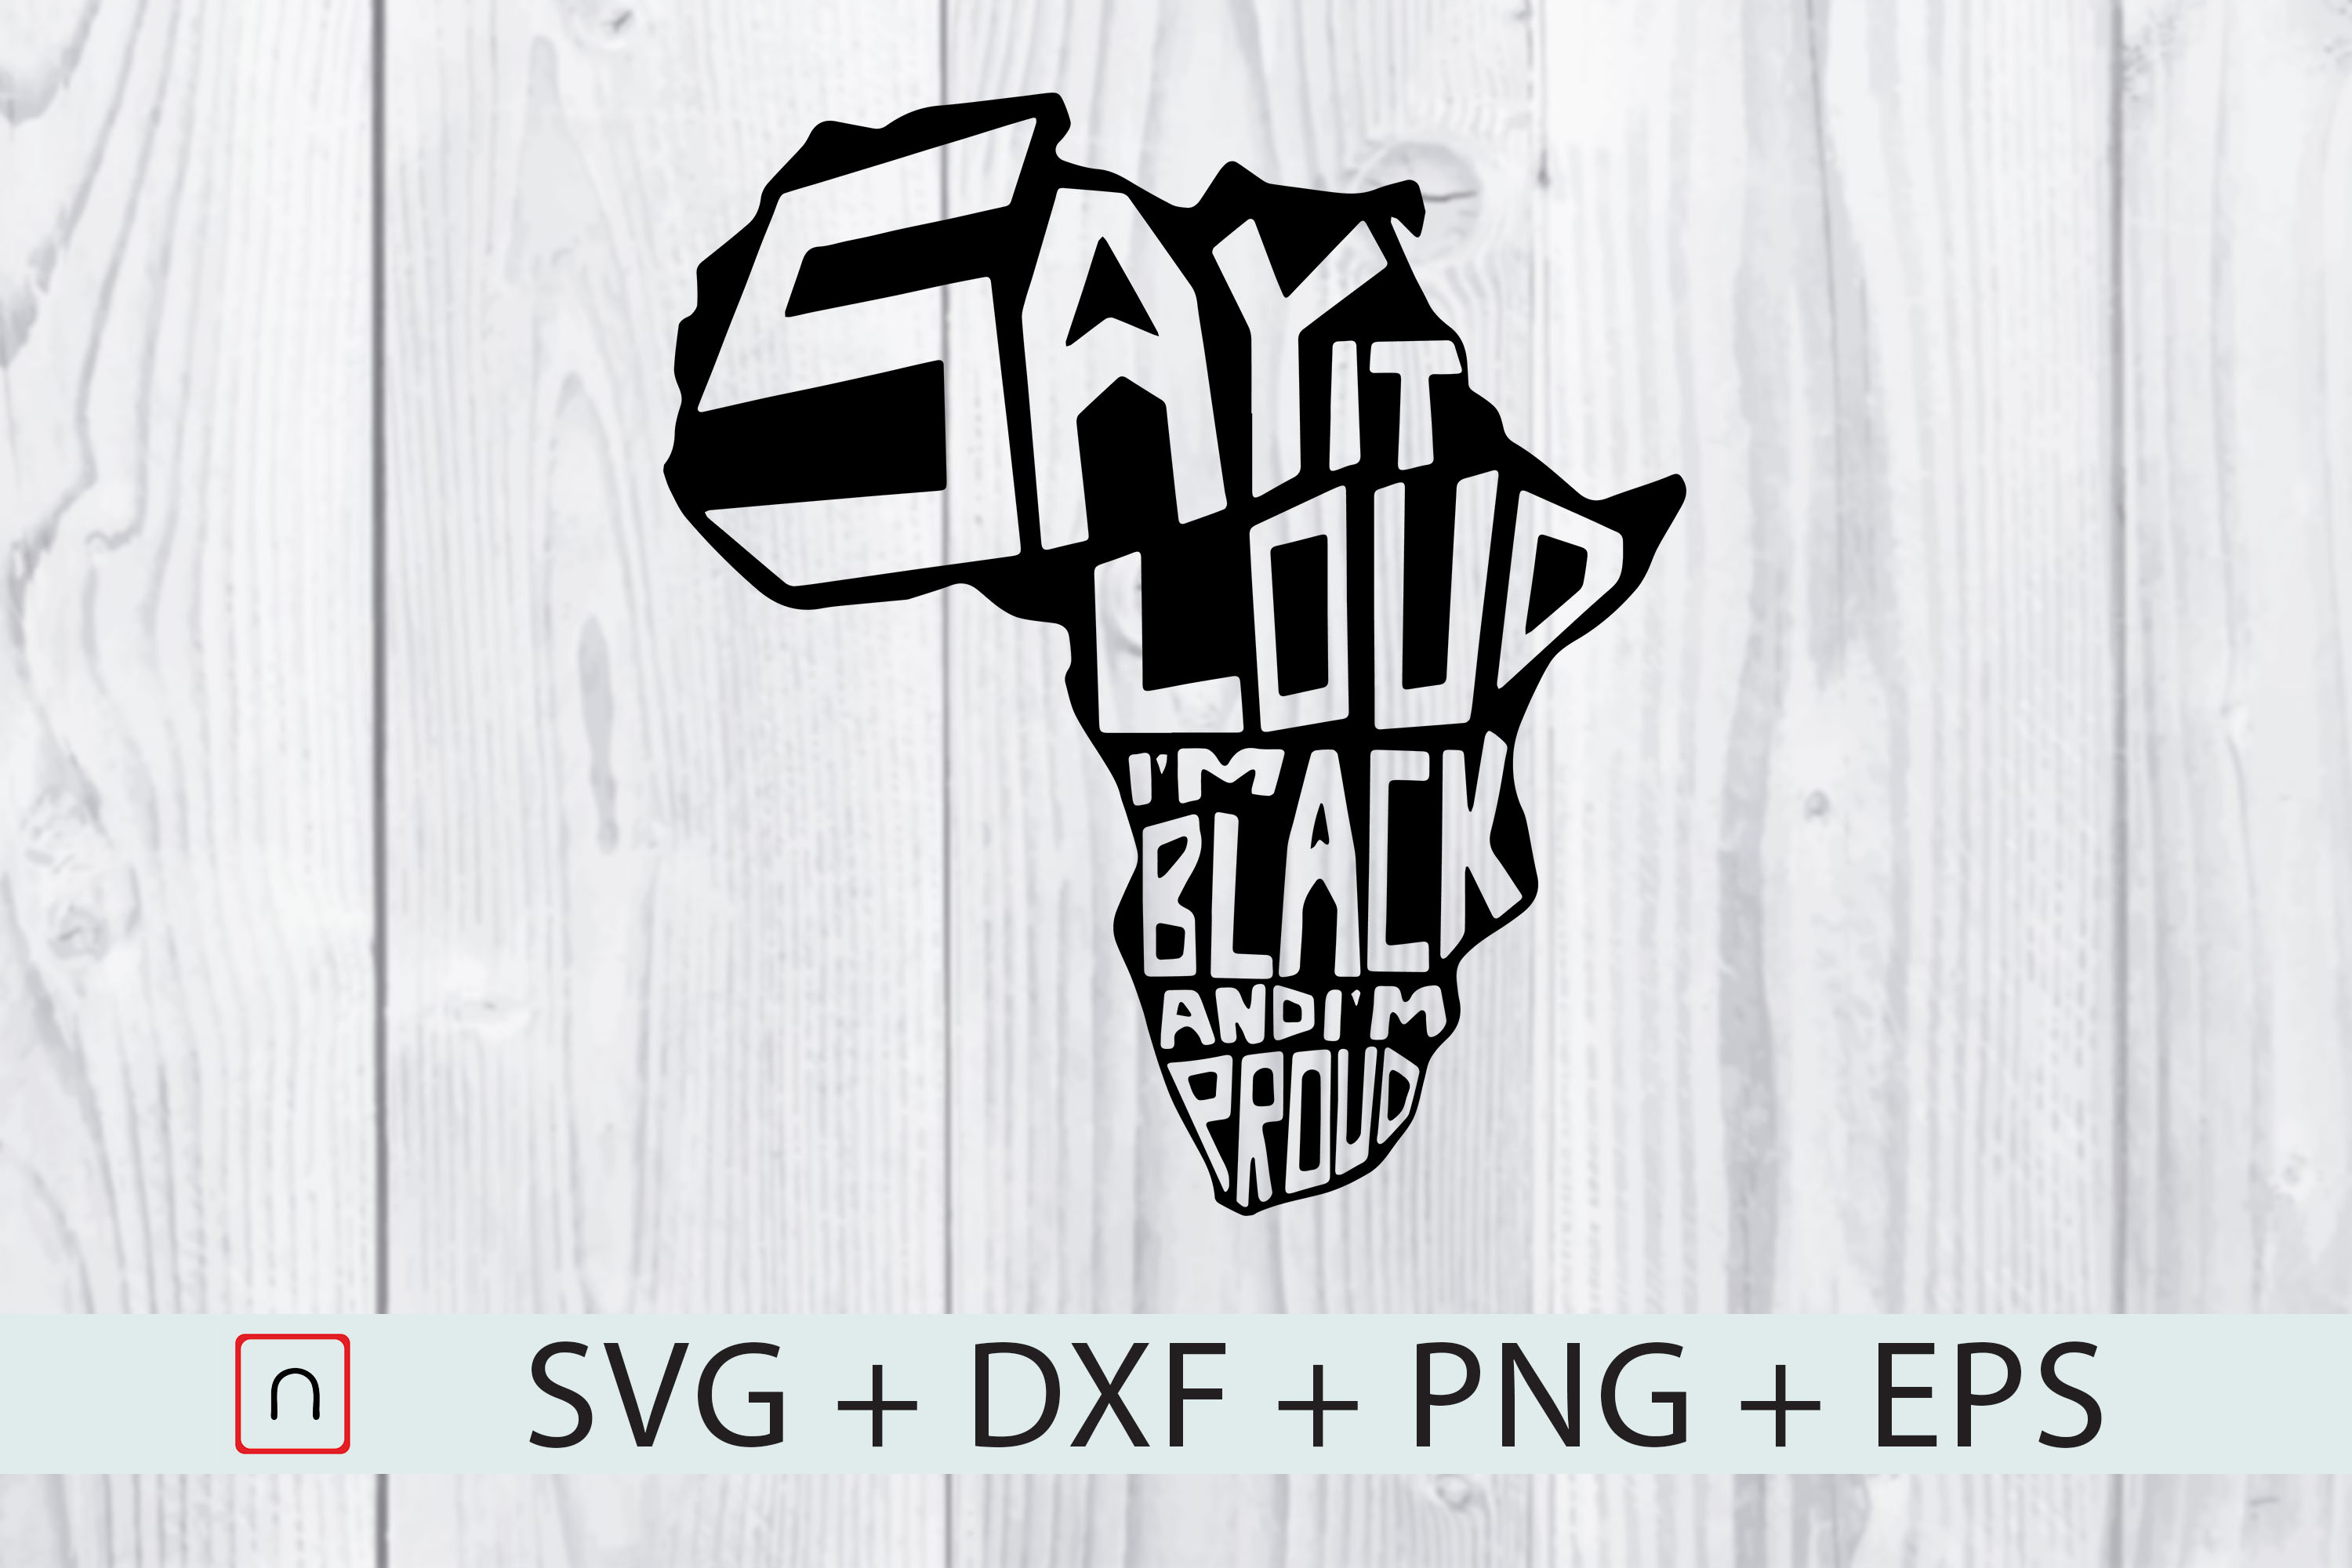 Download Free Say It Loud I M Black And I M Proud Graphic By Novalia for Cricut Explore, Silhouette and other cutting machines.